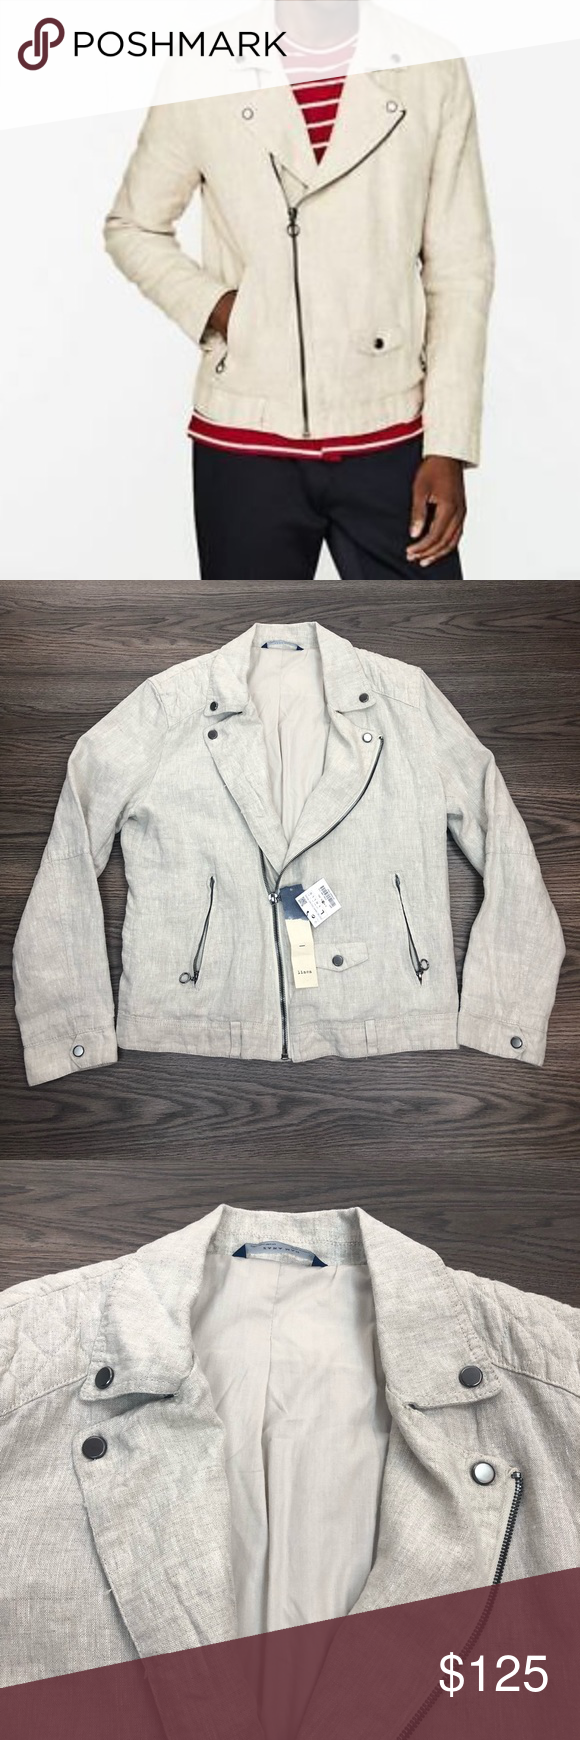 4f6ce892b516 Zara Man NWT Cream Linen Biker Bomber Jacket L Zara Man Solid Cream Linen  Bomber Biker Jacket size L! NEW WITH TAGS! Please make reasonable offers  and ...